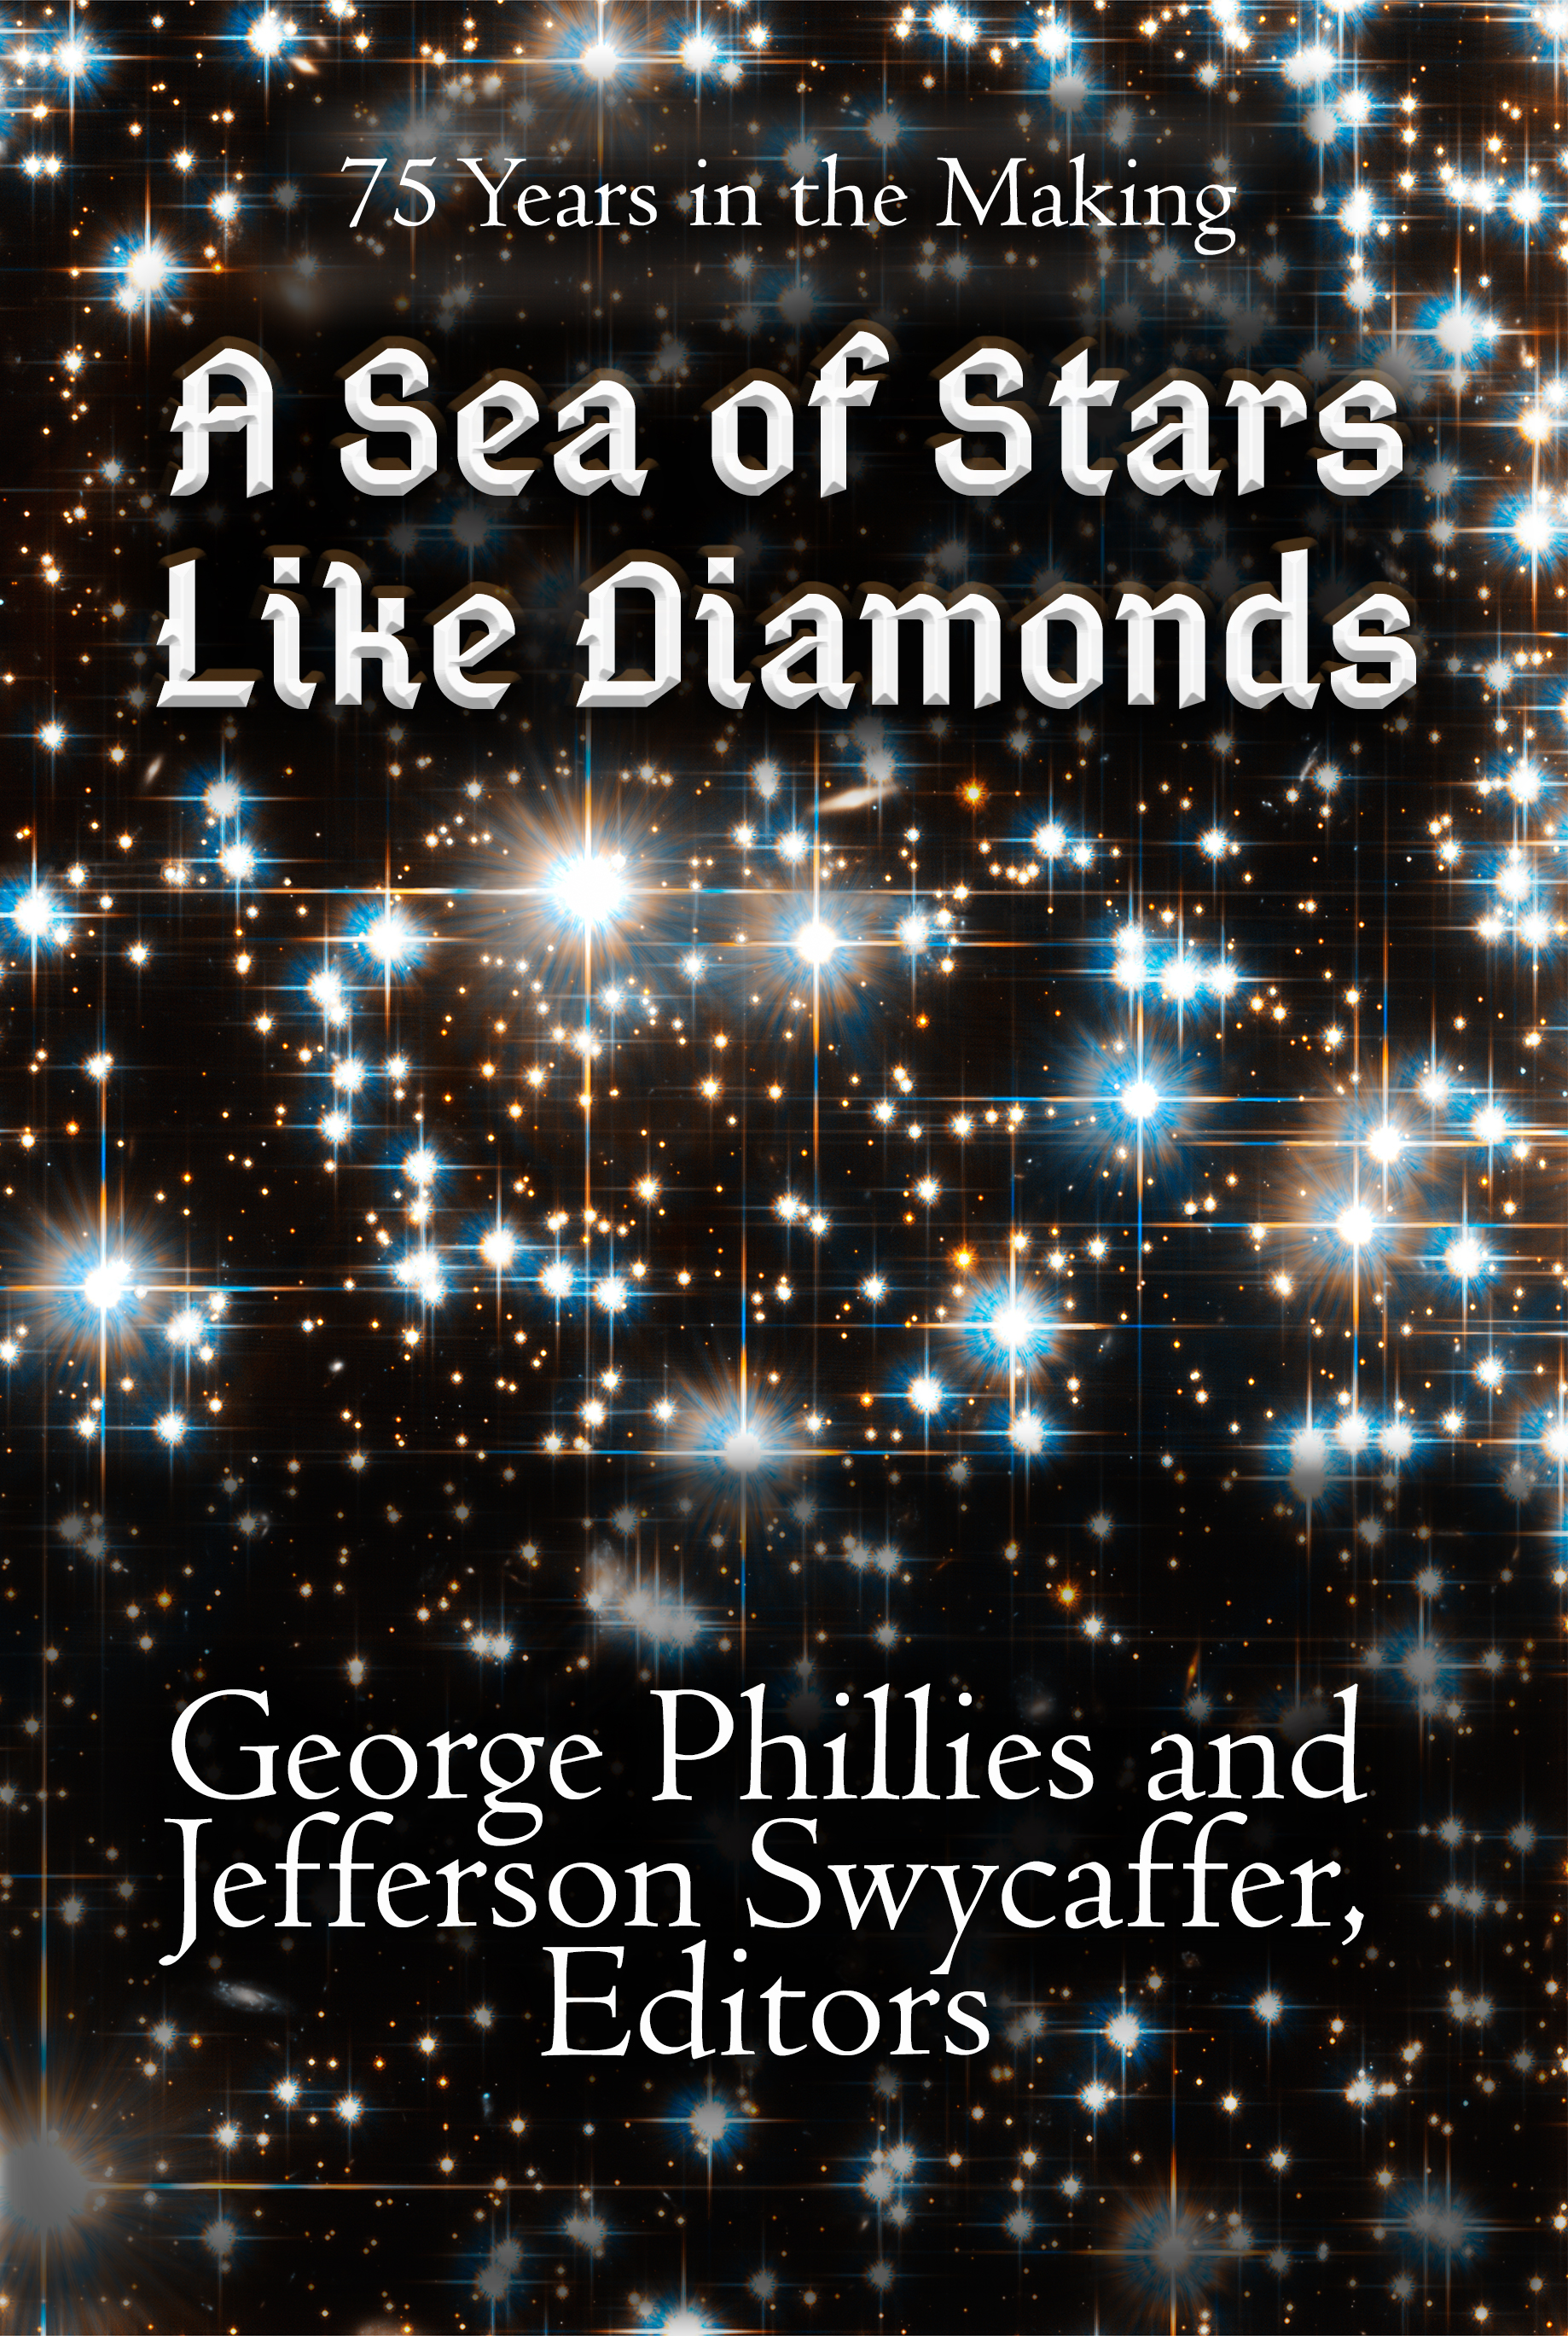 Sea of Stars front cover